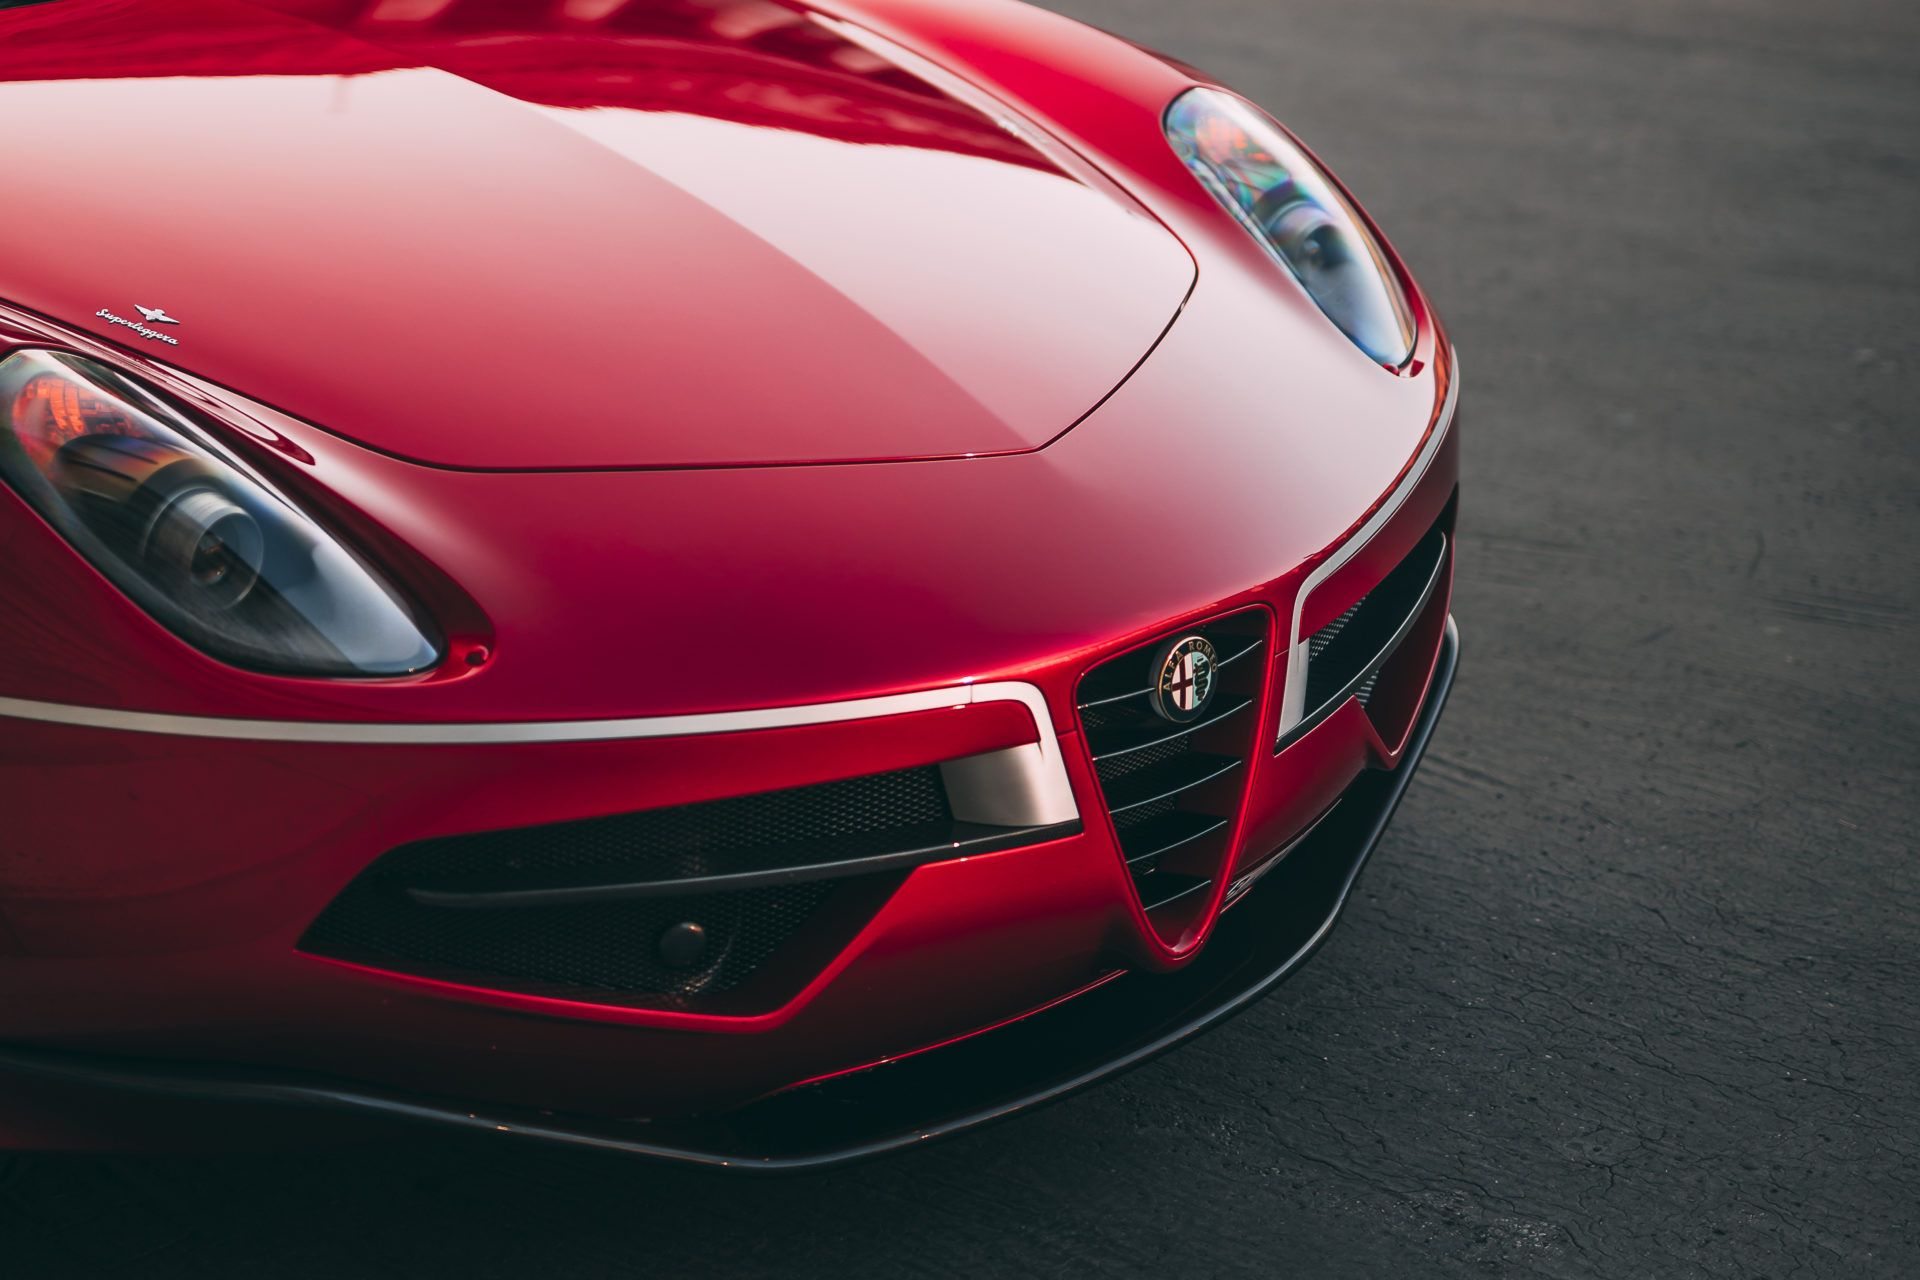 Alfa-Romeo-Disco-Volante-Spyder-for-sale-8